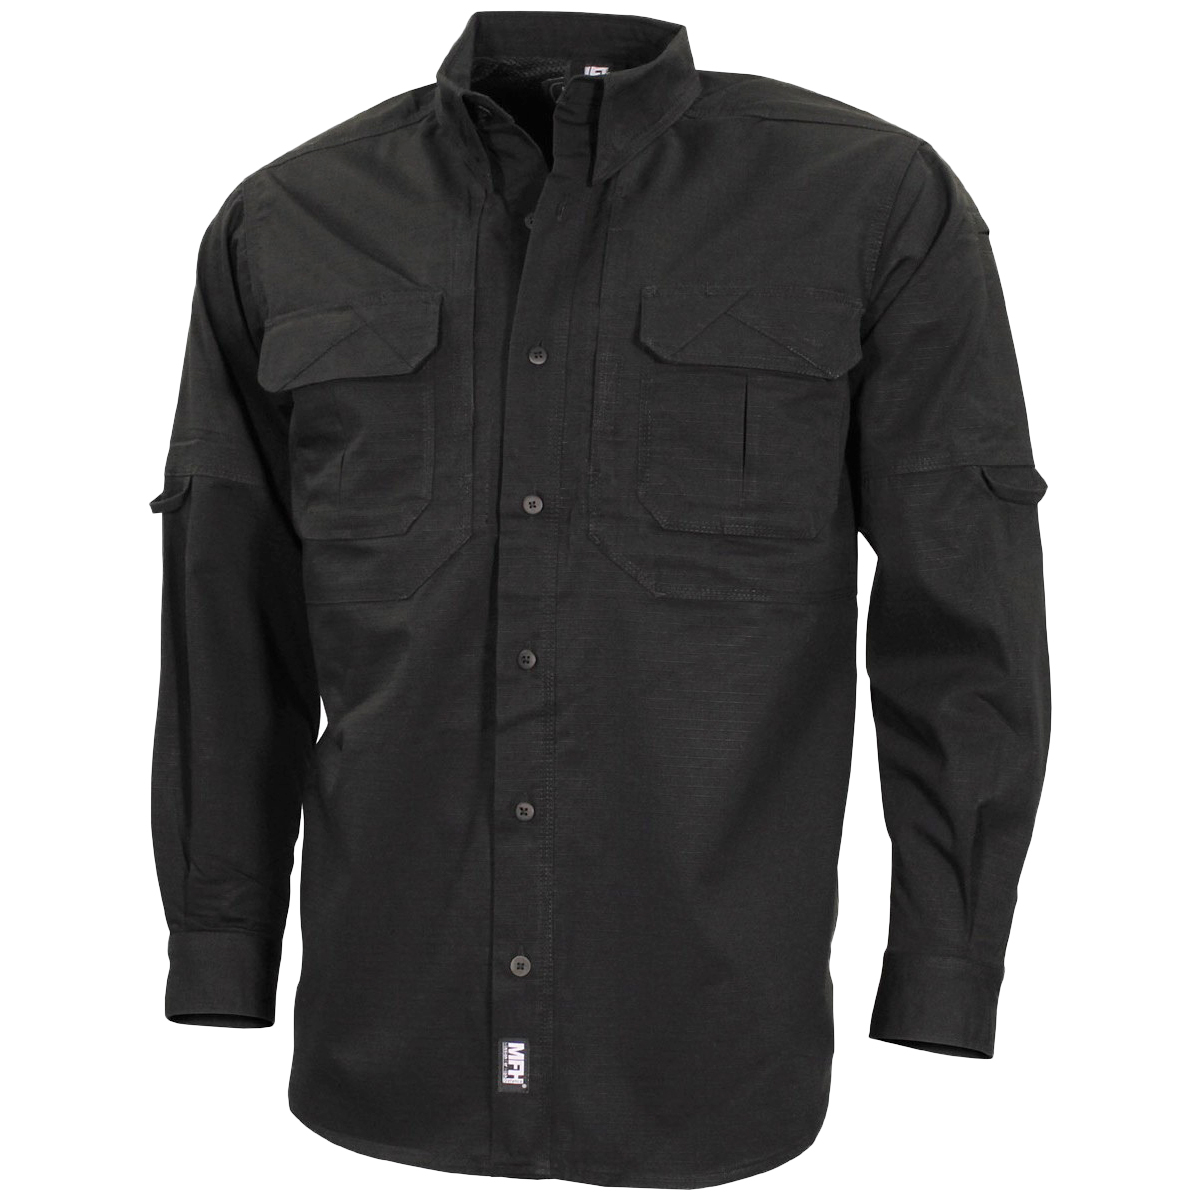 Details about MFH Strike Long Sleeve Mens Shirt Security Tactical Police  Outdoor Top Black 5e1aba8b870